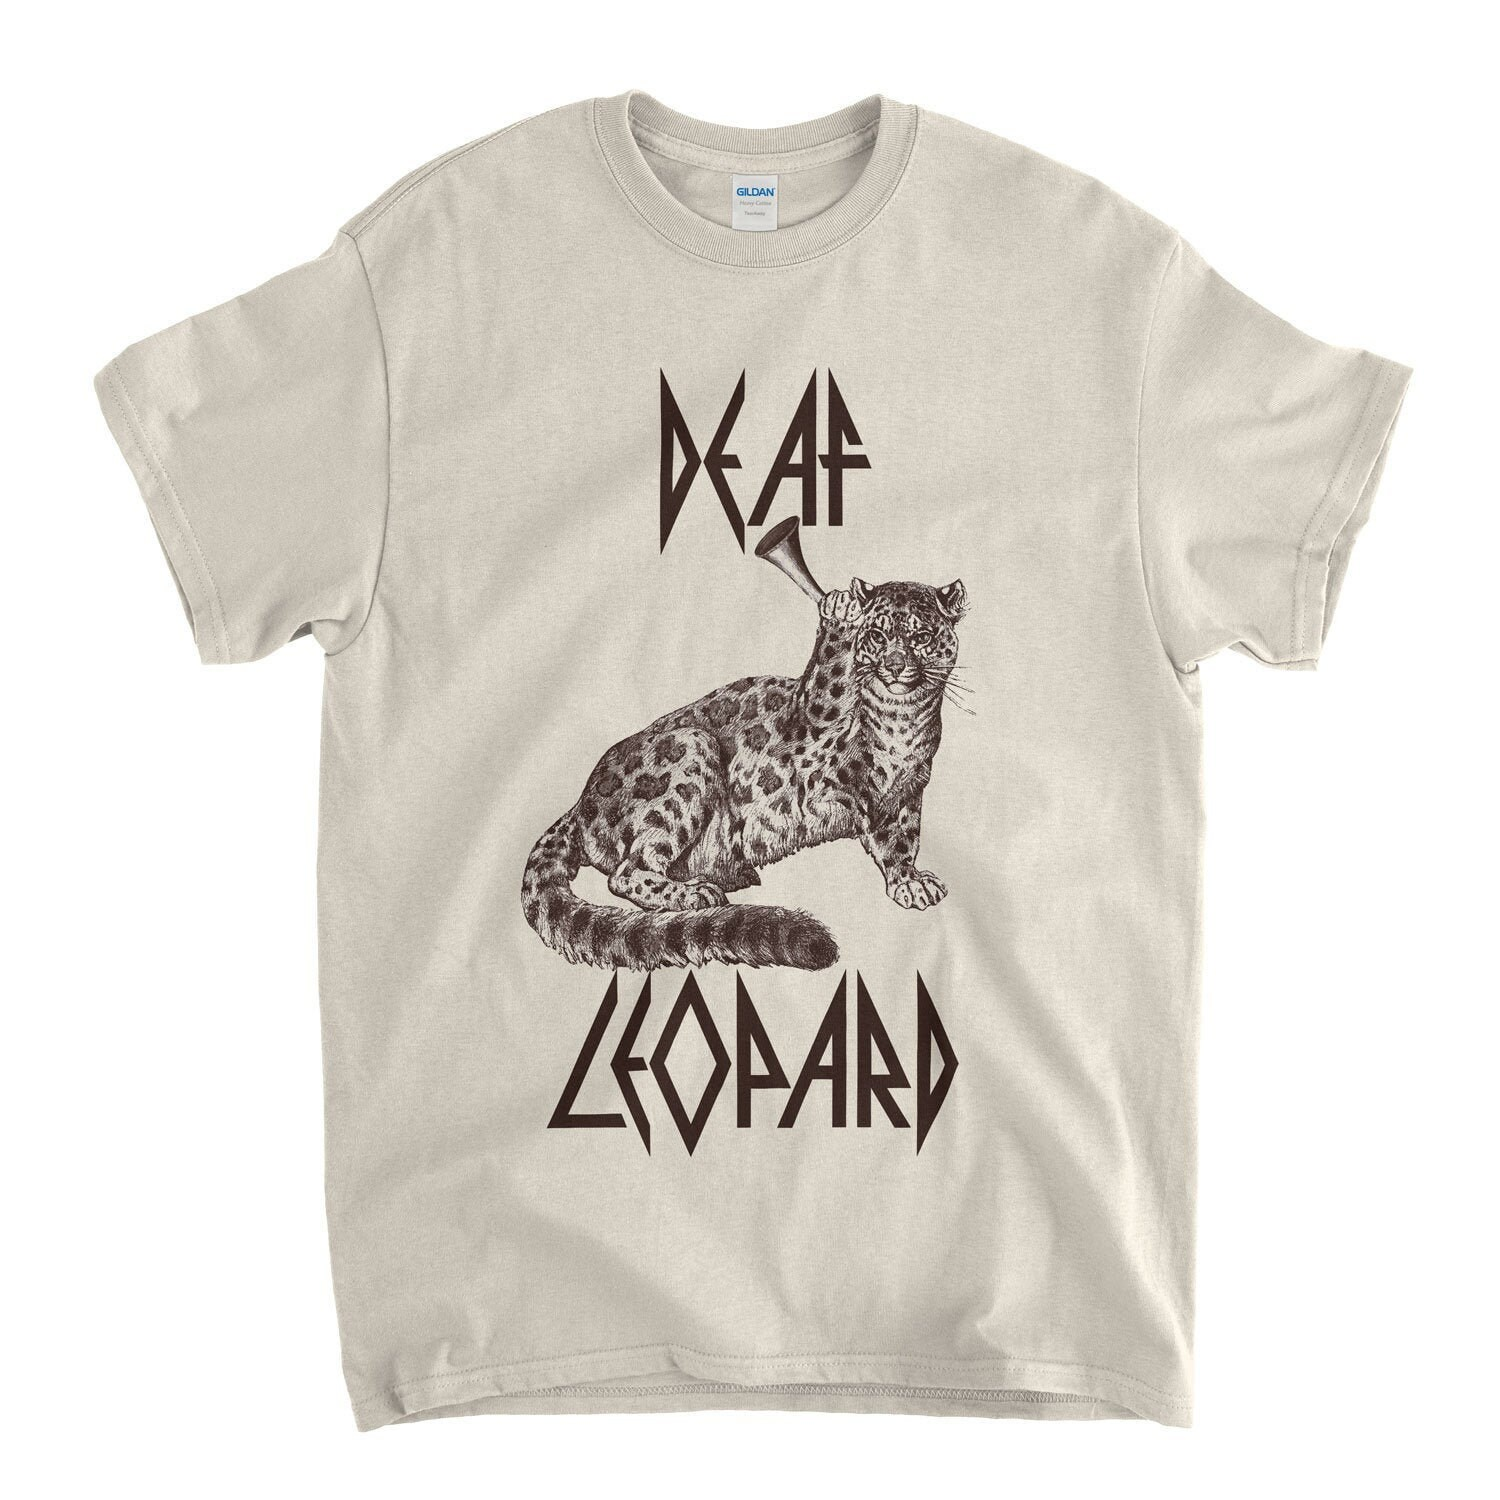 Unisex Funny Deaf Leopard T-shirt - up to 5XL